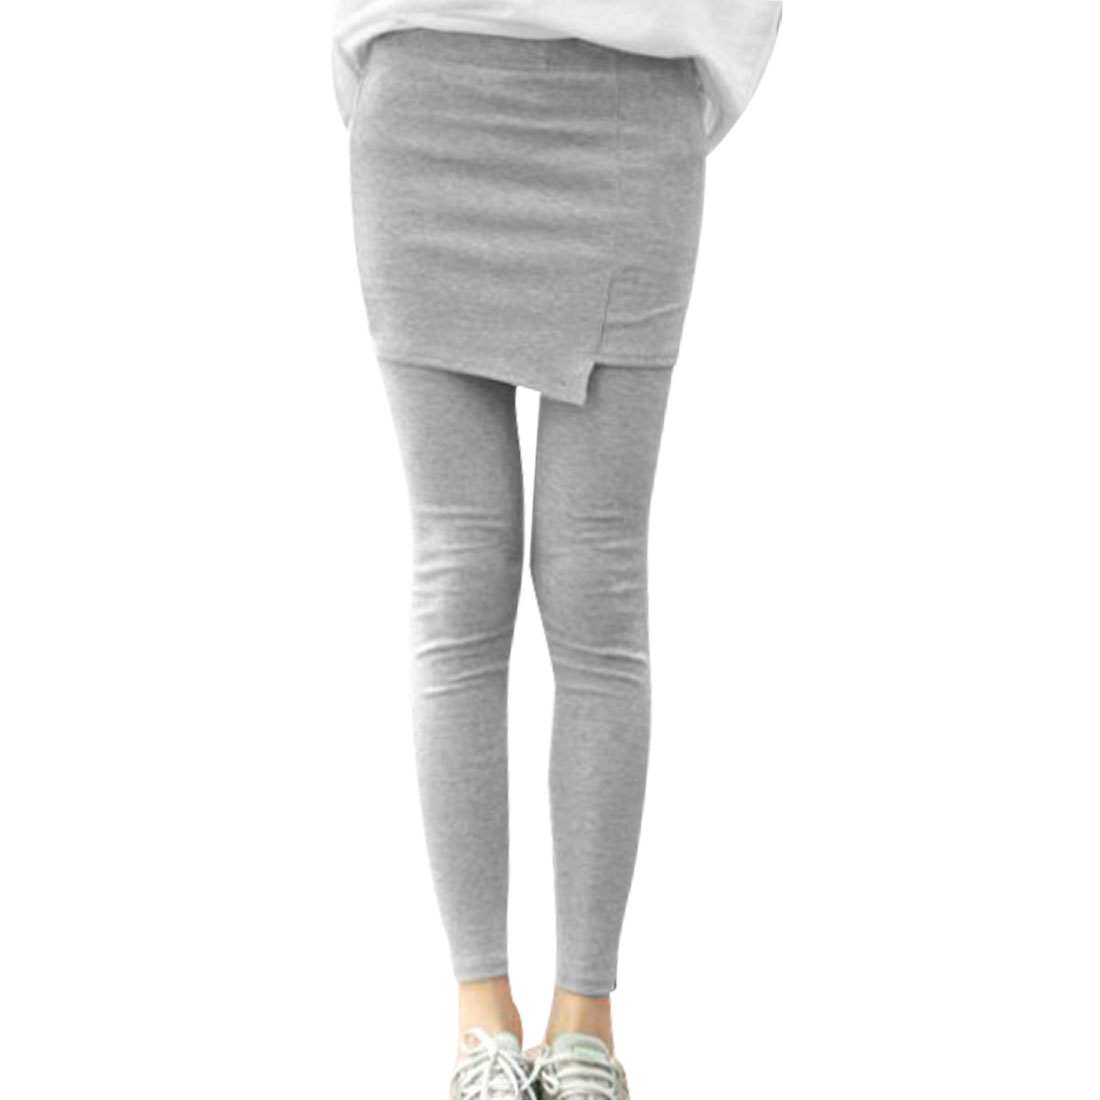 Women Korea Style Hip Tight Skinny Full Length Skirt Leggings Gray XS